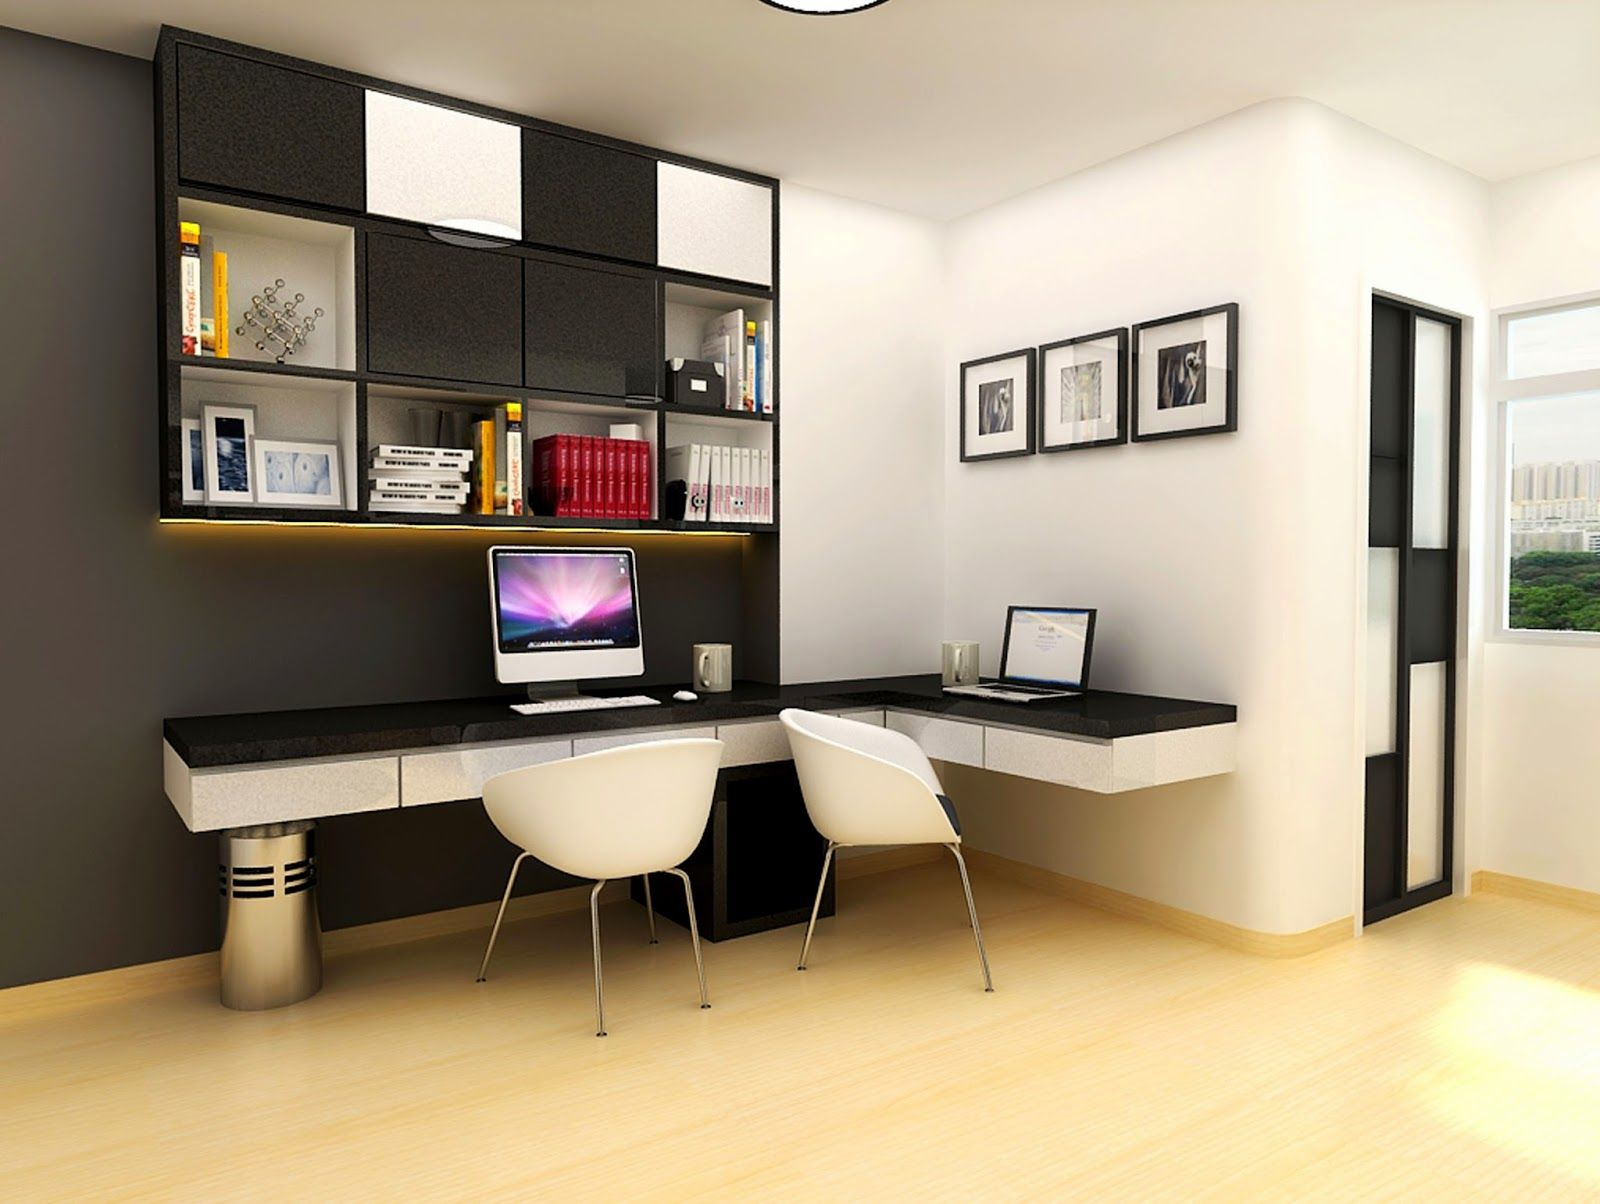 Design Inspirations 10 Neat Yet Fun Study Room Ideas For Agers Simple And Minimalist